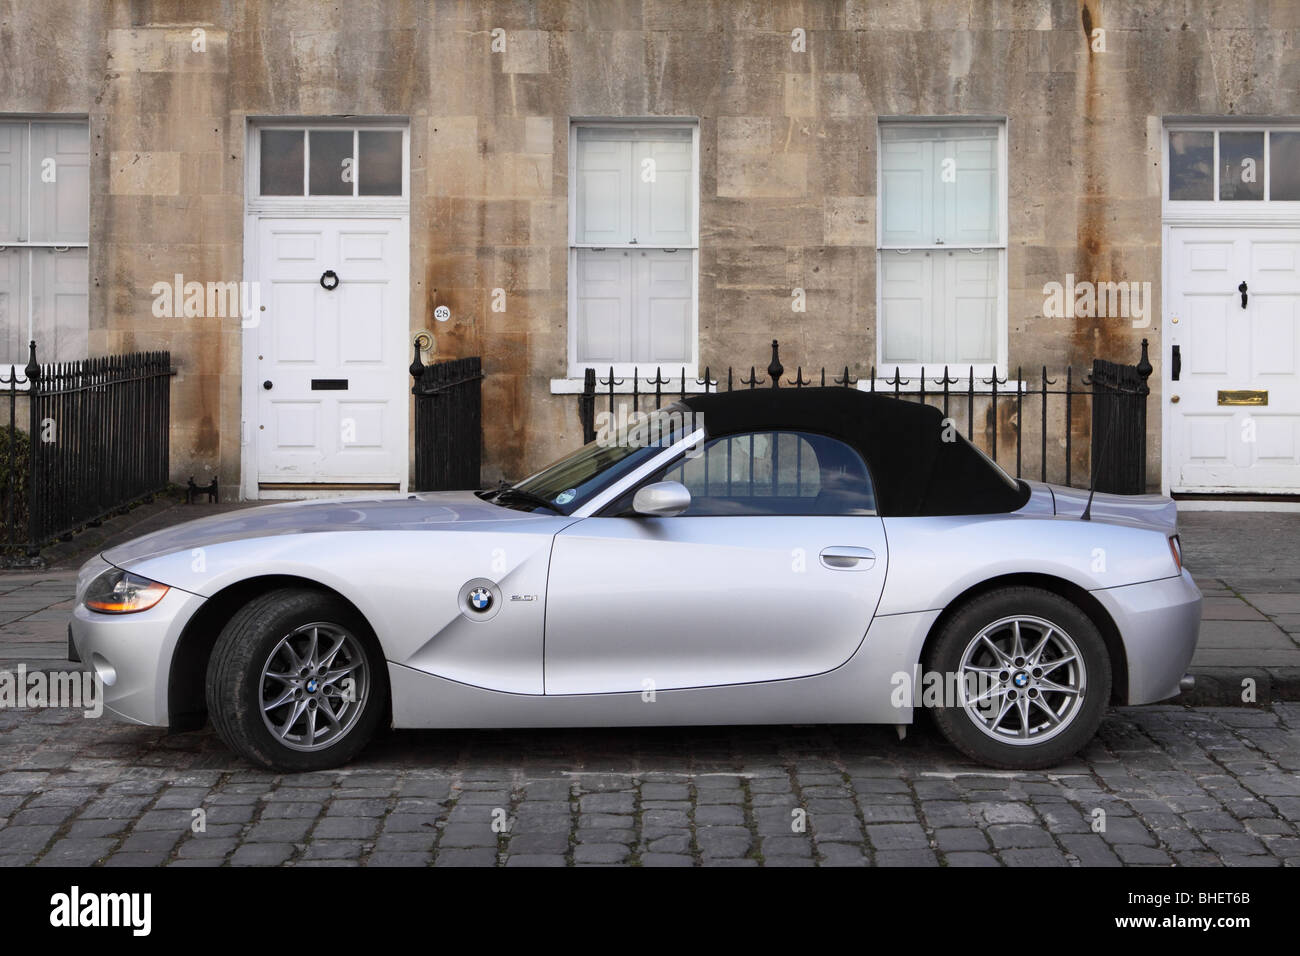 BMW Z4 Roadster convertible soft top sports car parked in The Royal Crescent Bath - Stock Image